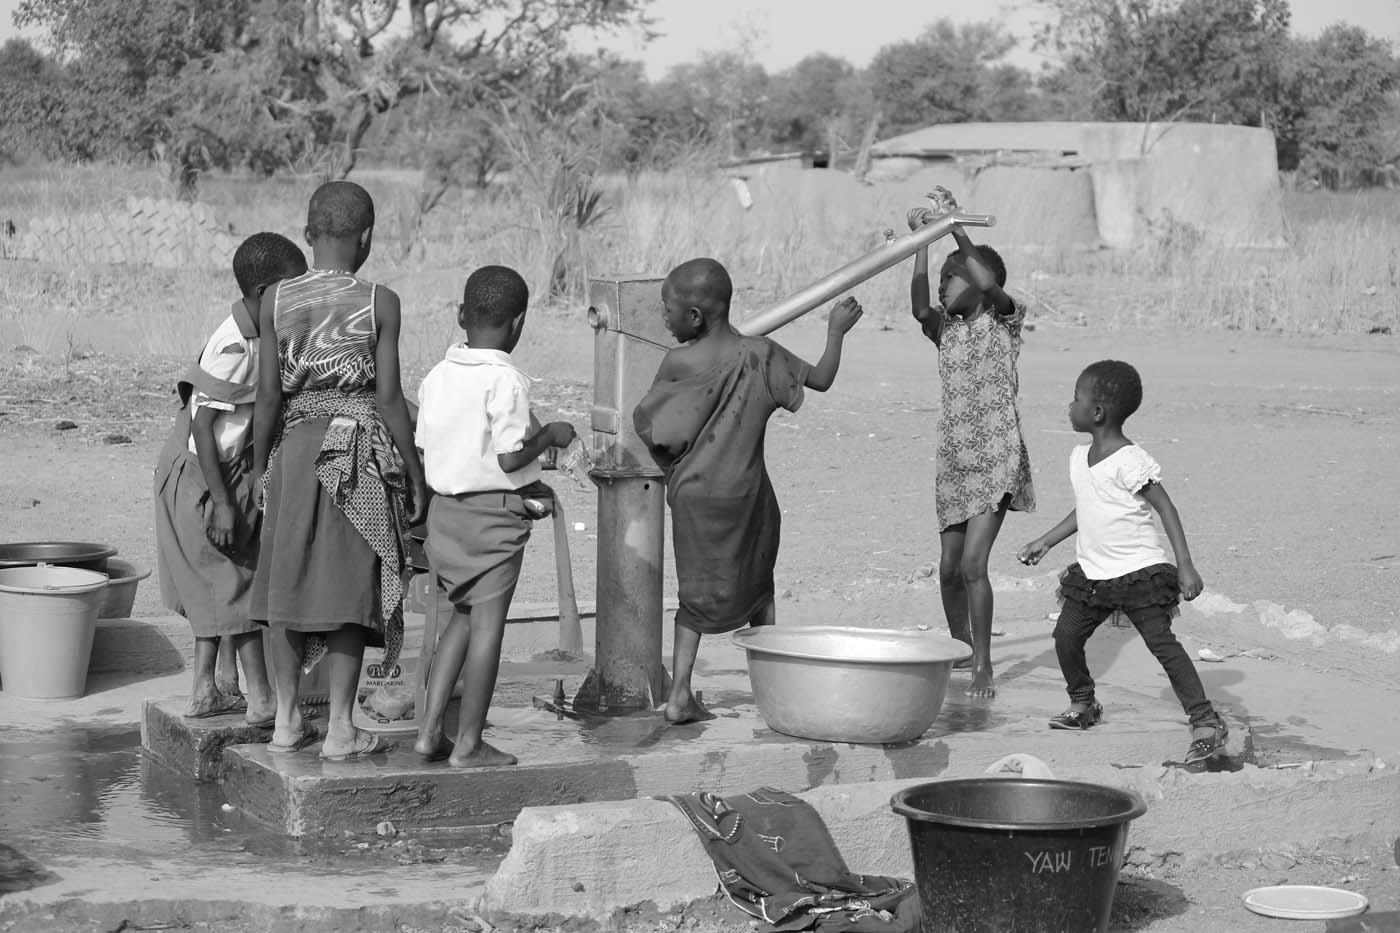 Children fetch water from a young age